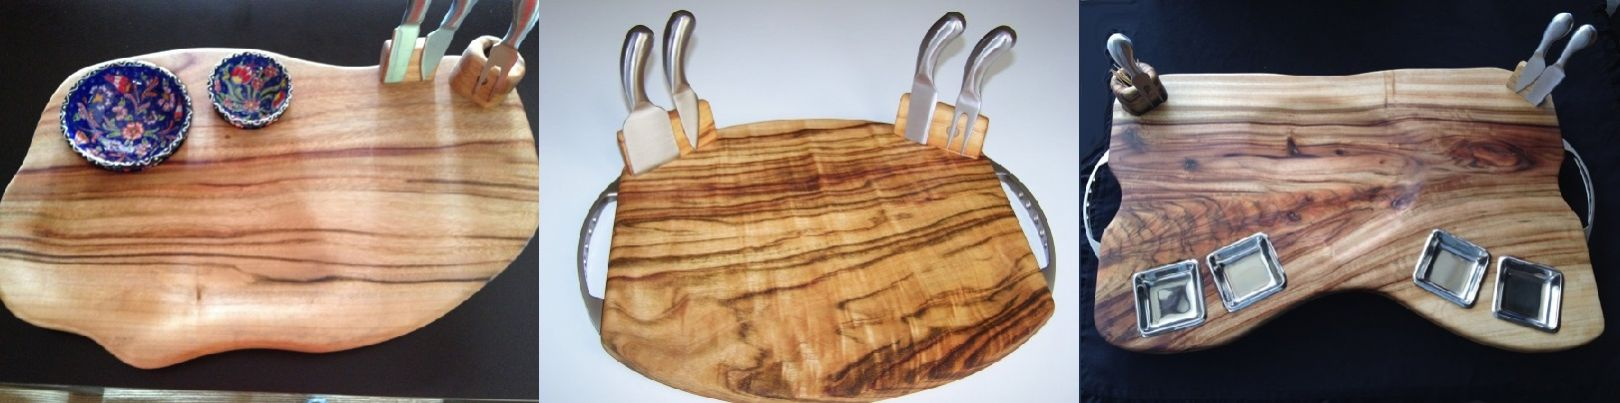 Natures Cutting Boards And Serving Platters Home3